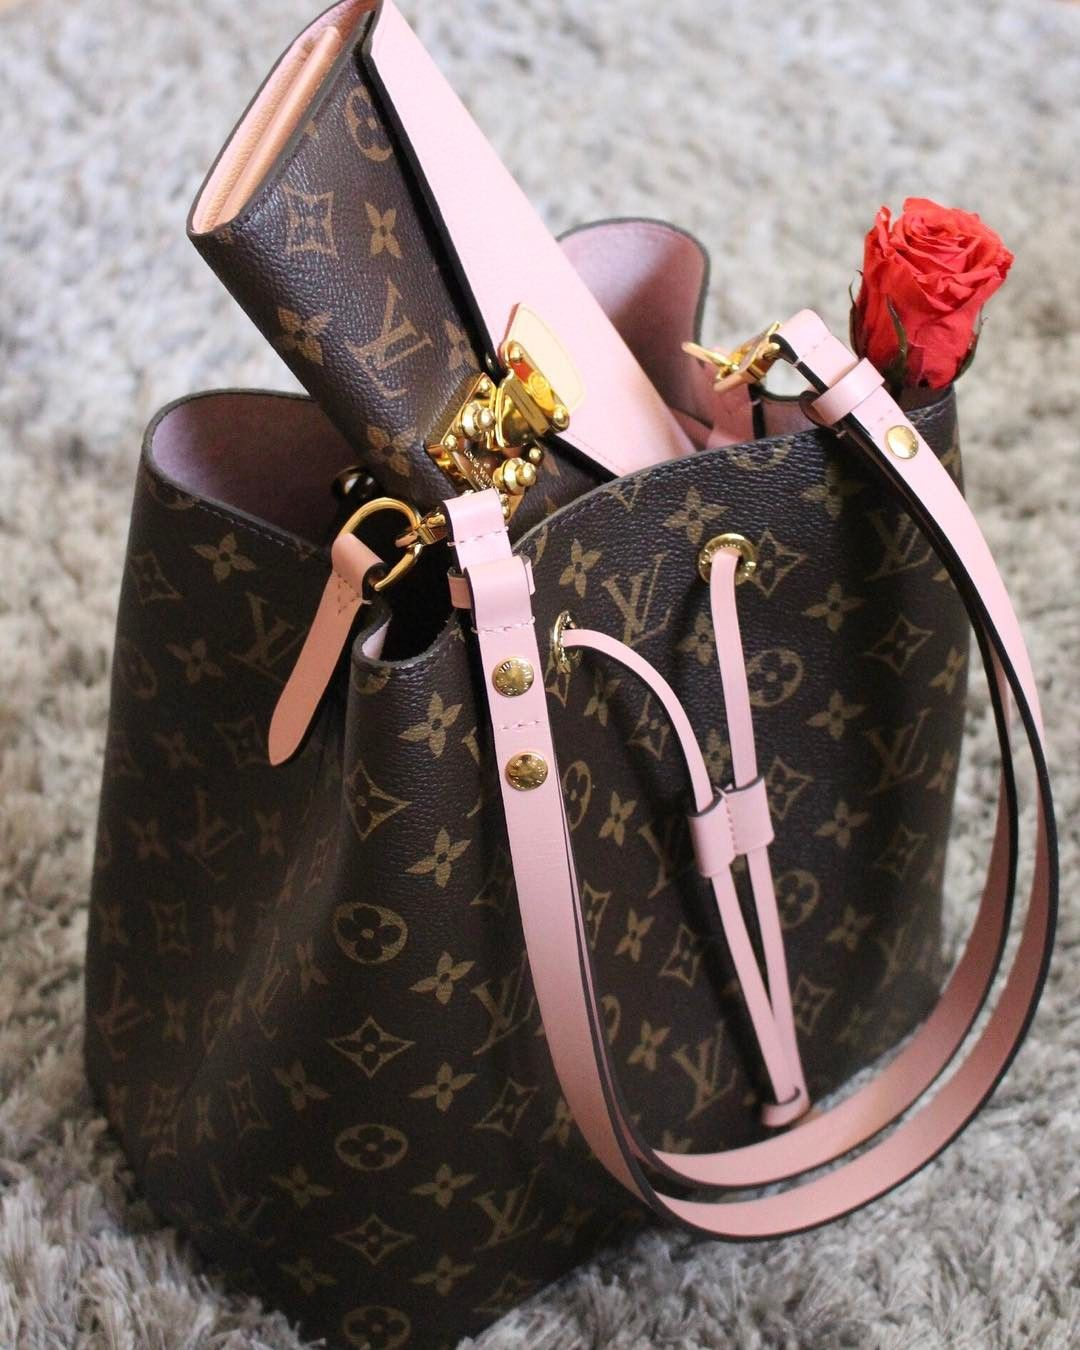 2017 lv collection in pink louis vuitton monogram neonoe for Louis vuitton miroir bags